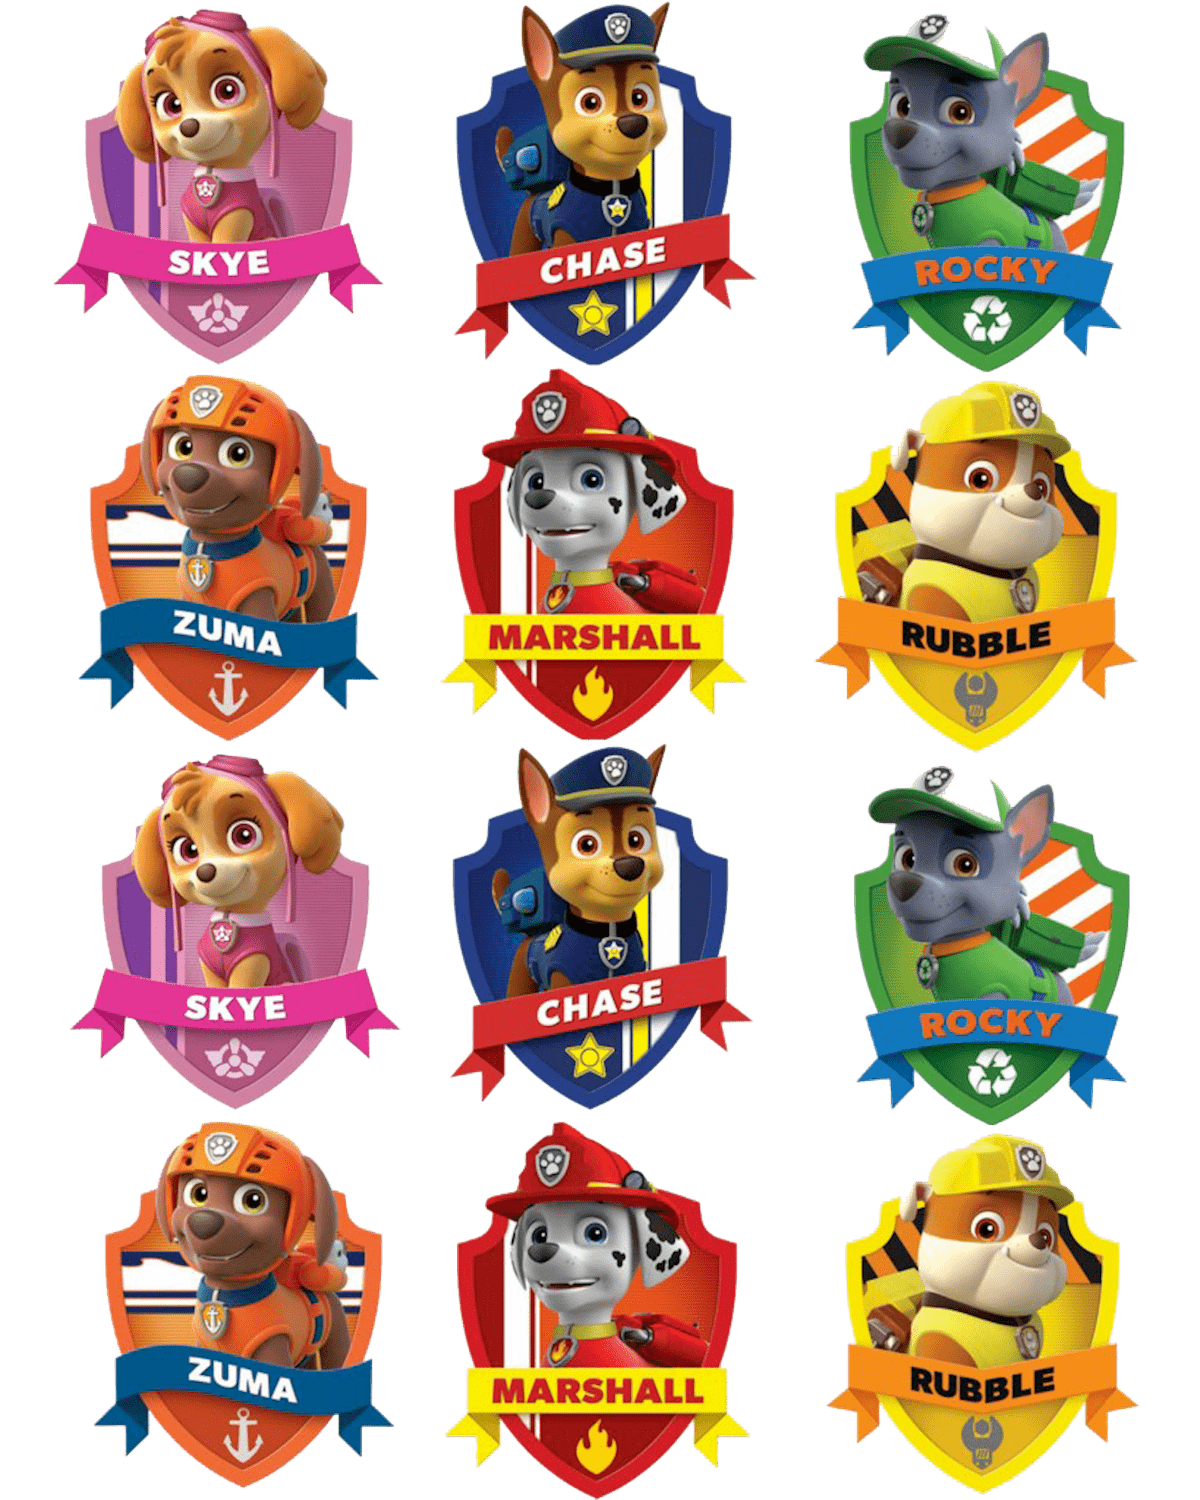 Paw patrol badges png. Clipart